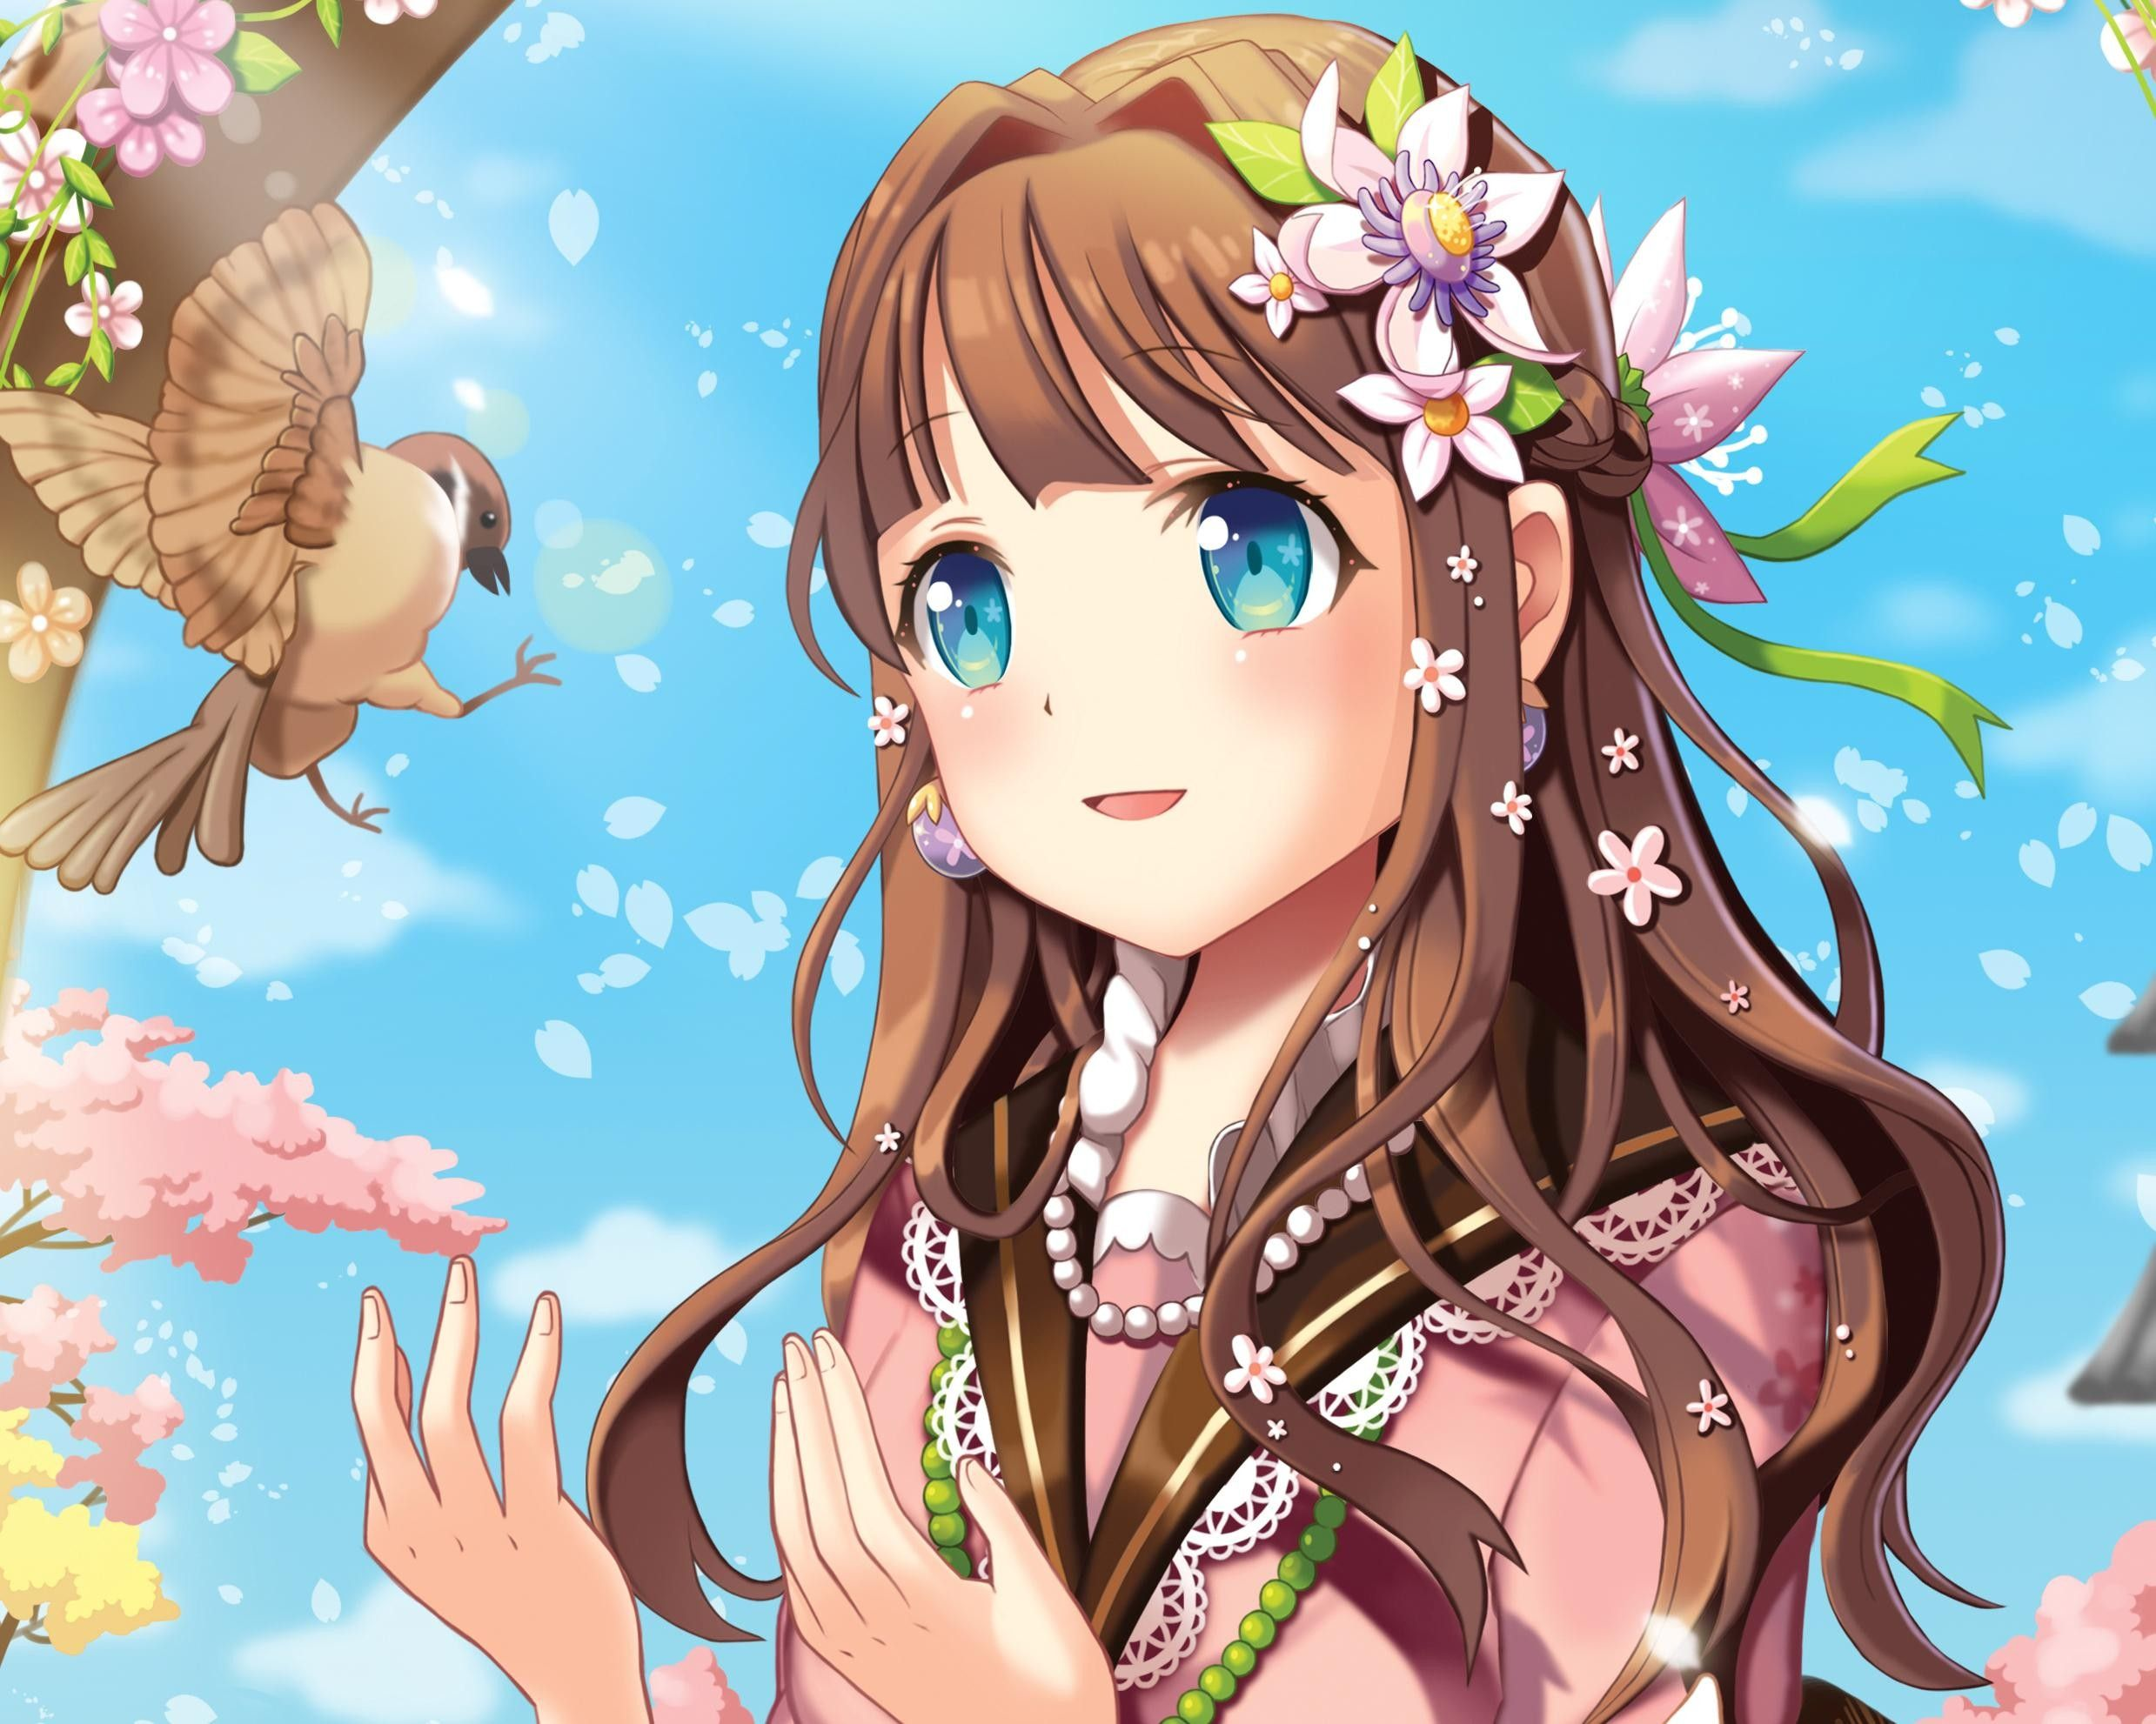 Anime girl with brown hair google search anime - Anime girl with blue eyes ...